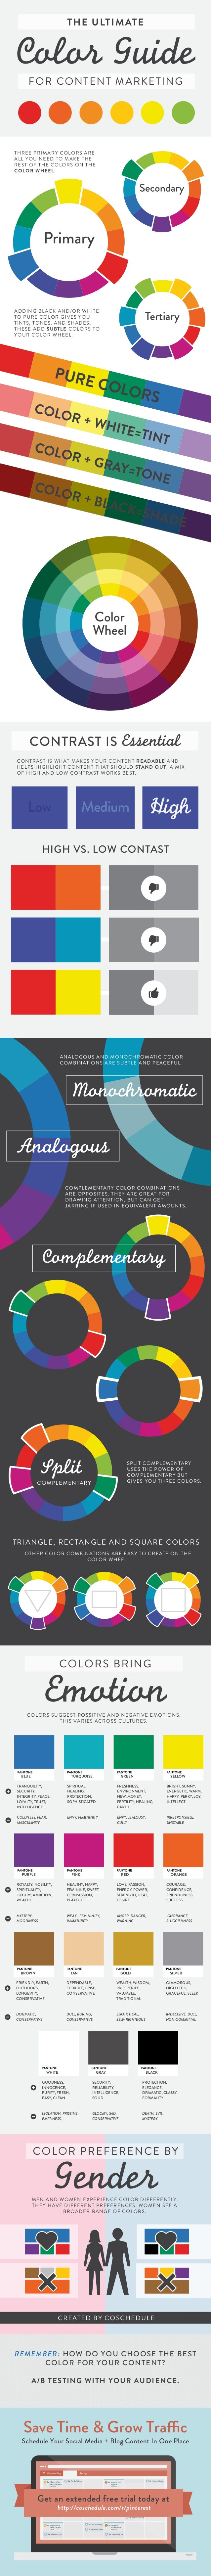 The Ultimate Guide To Using Color For Content Marketing